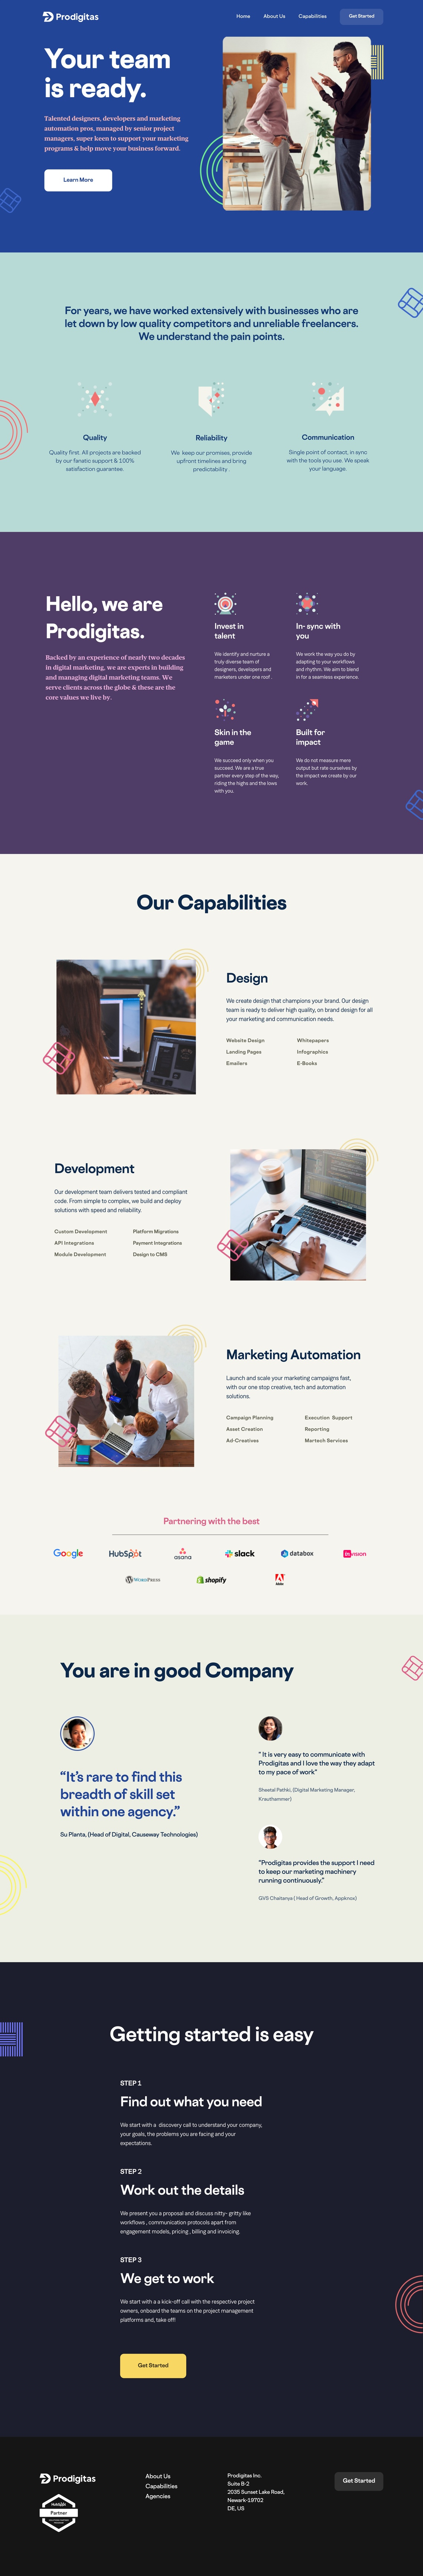 Digital Marketing Support Teams by Prodigitas | Design, Development and Campaign Execution Support for Companies and Agencies